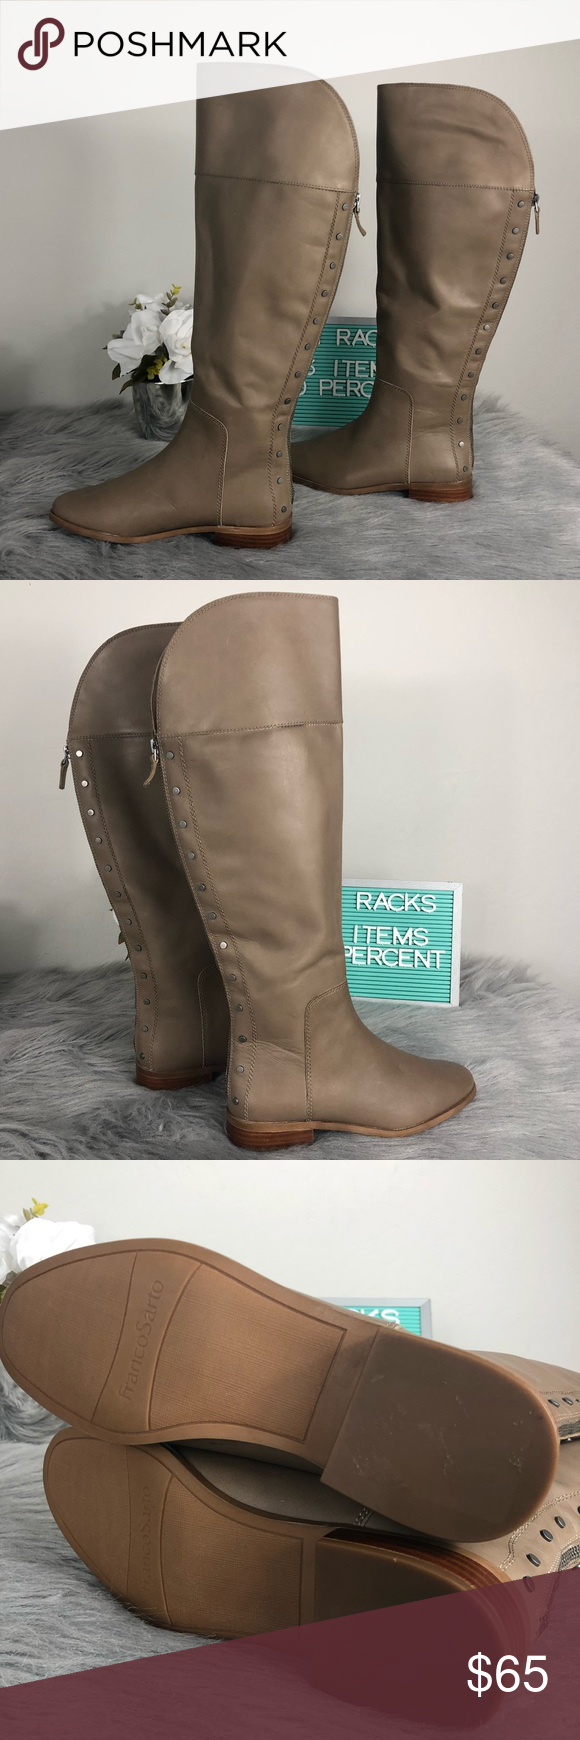 2ae23e5e0c1d Franco Sarto Roselle Tall Riding Boot Back Zip Franco Sarto Roselle Tall  Riding Boot Back Zip Never Been Worn Minor Scuffs From Storage.